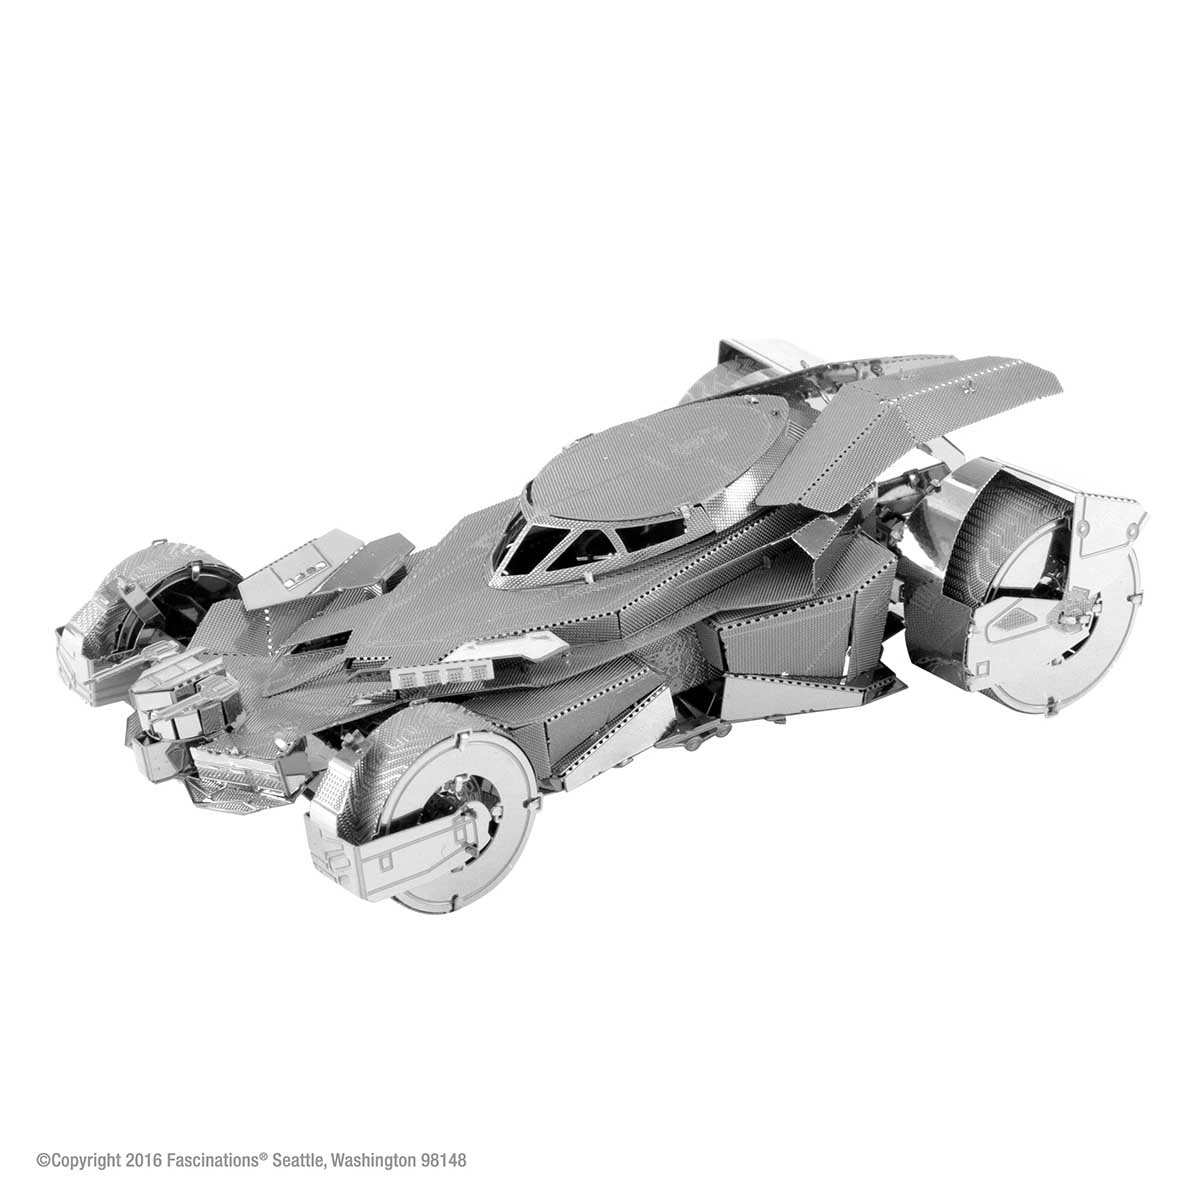 Batmobile Vehicles 3D Puzzle